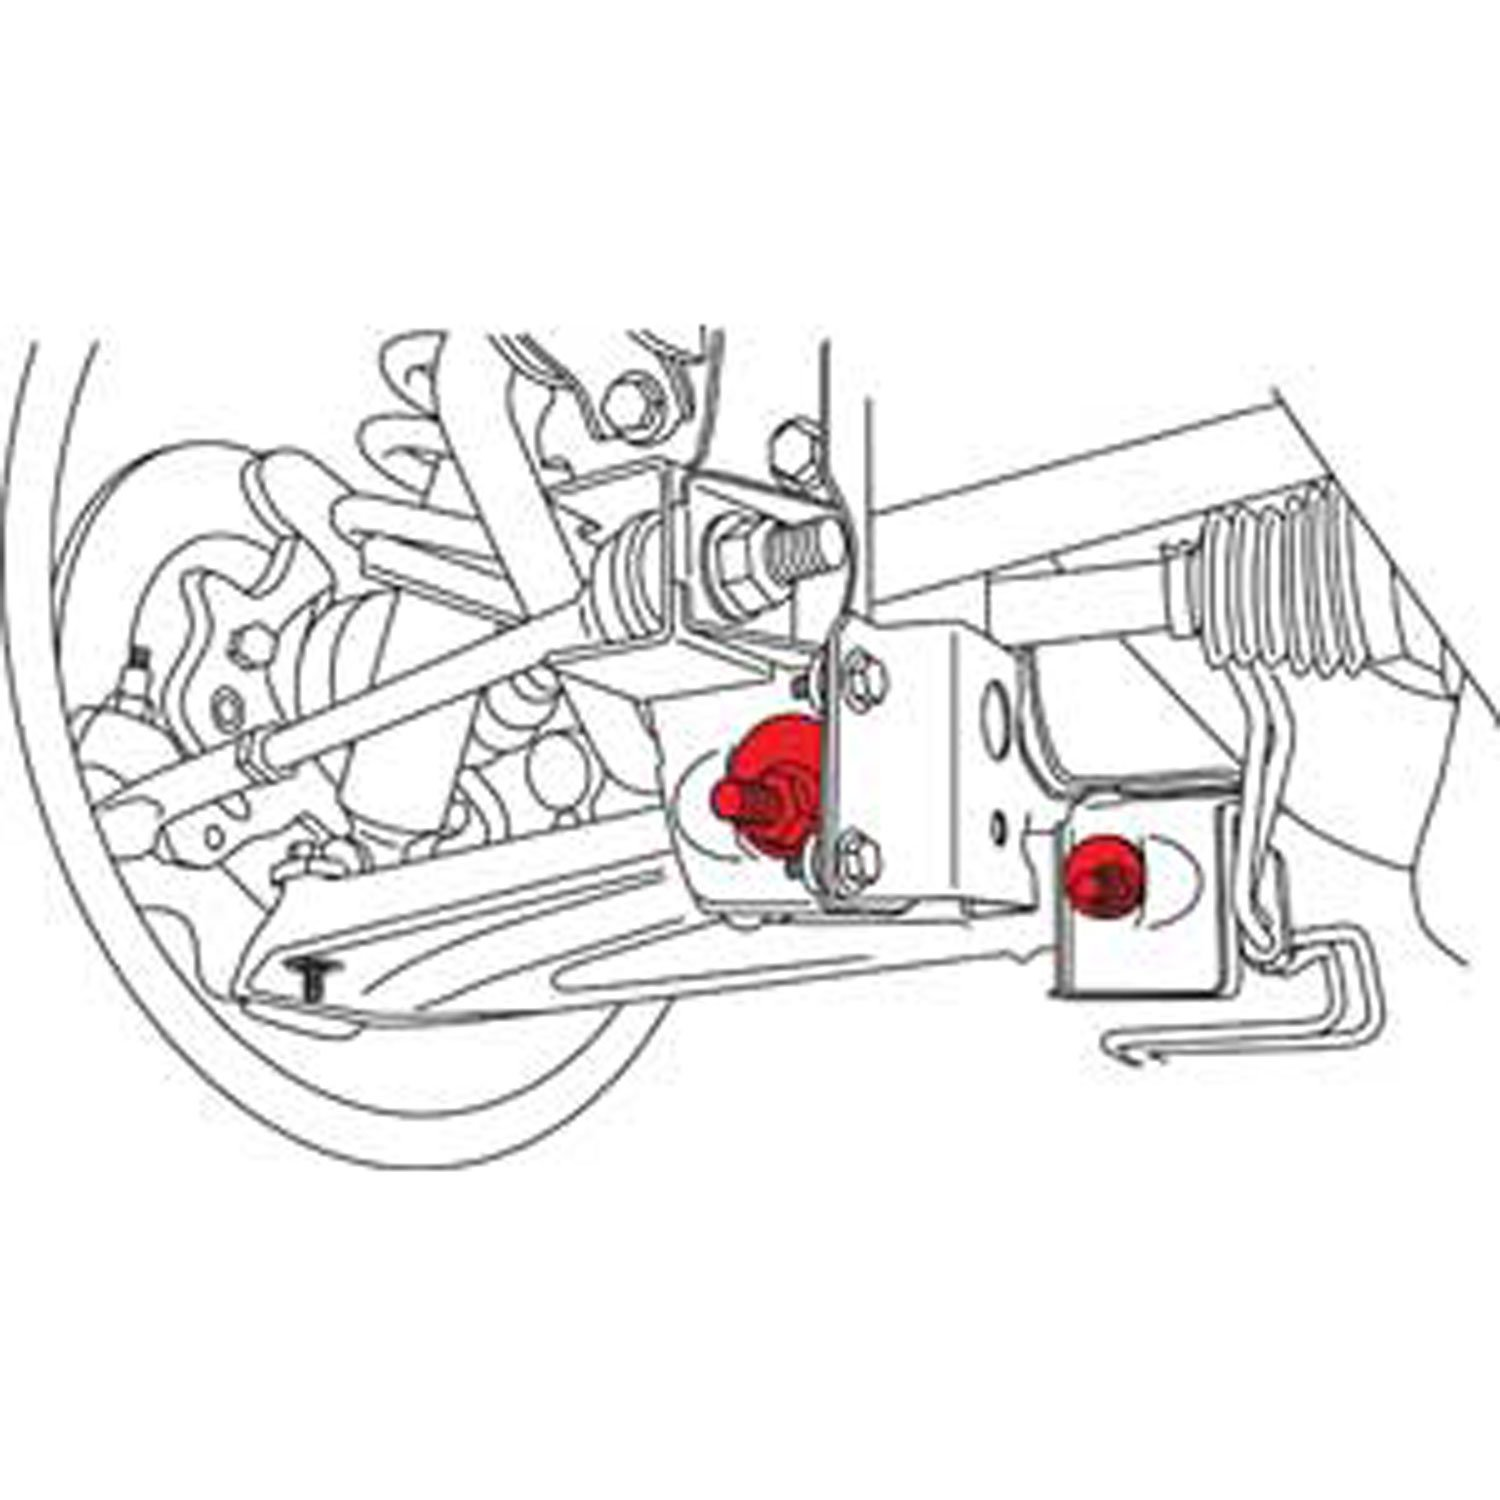 1999 Saab 9 3 2 0l Turbo Serpentine Belt Diagram Wiring Source Ford 4 9l Engine 2014 Mazda Timing Or Chain On